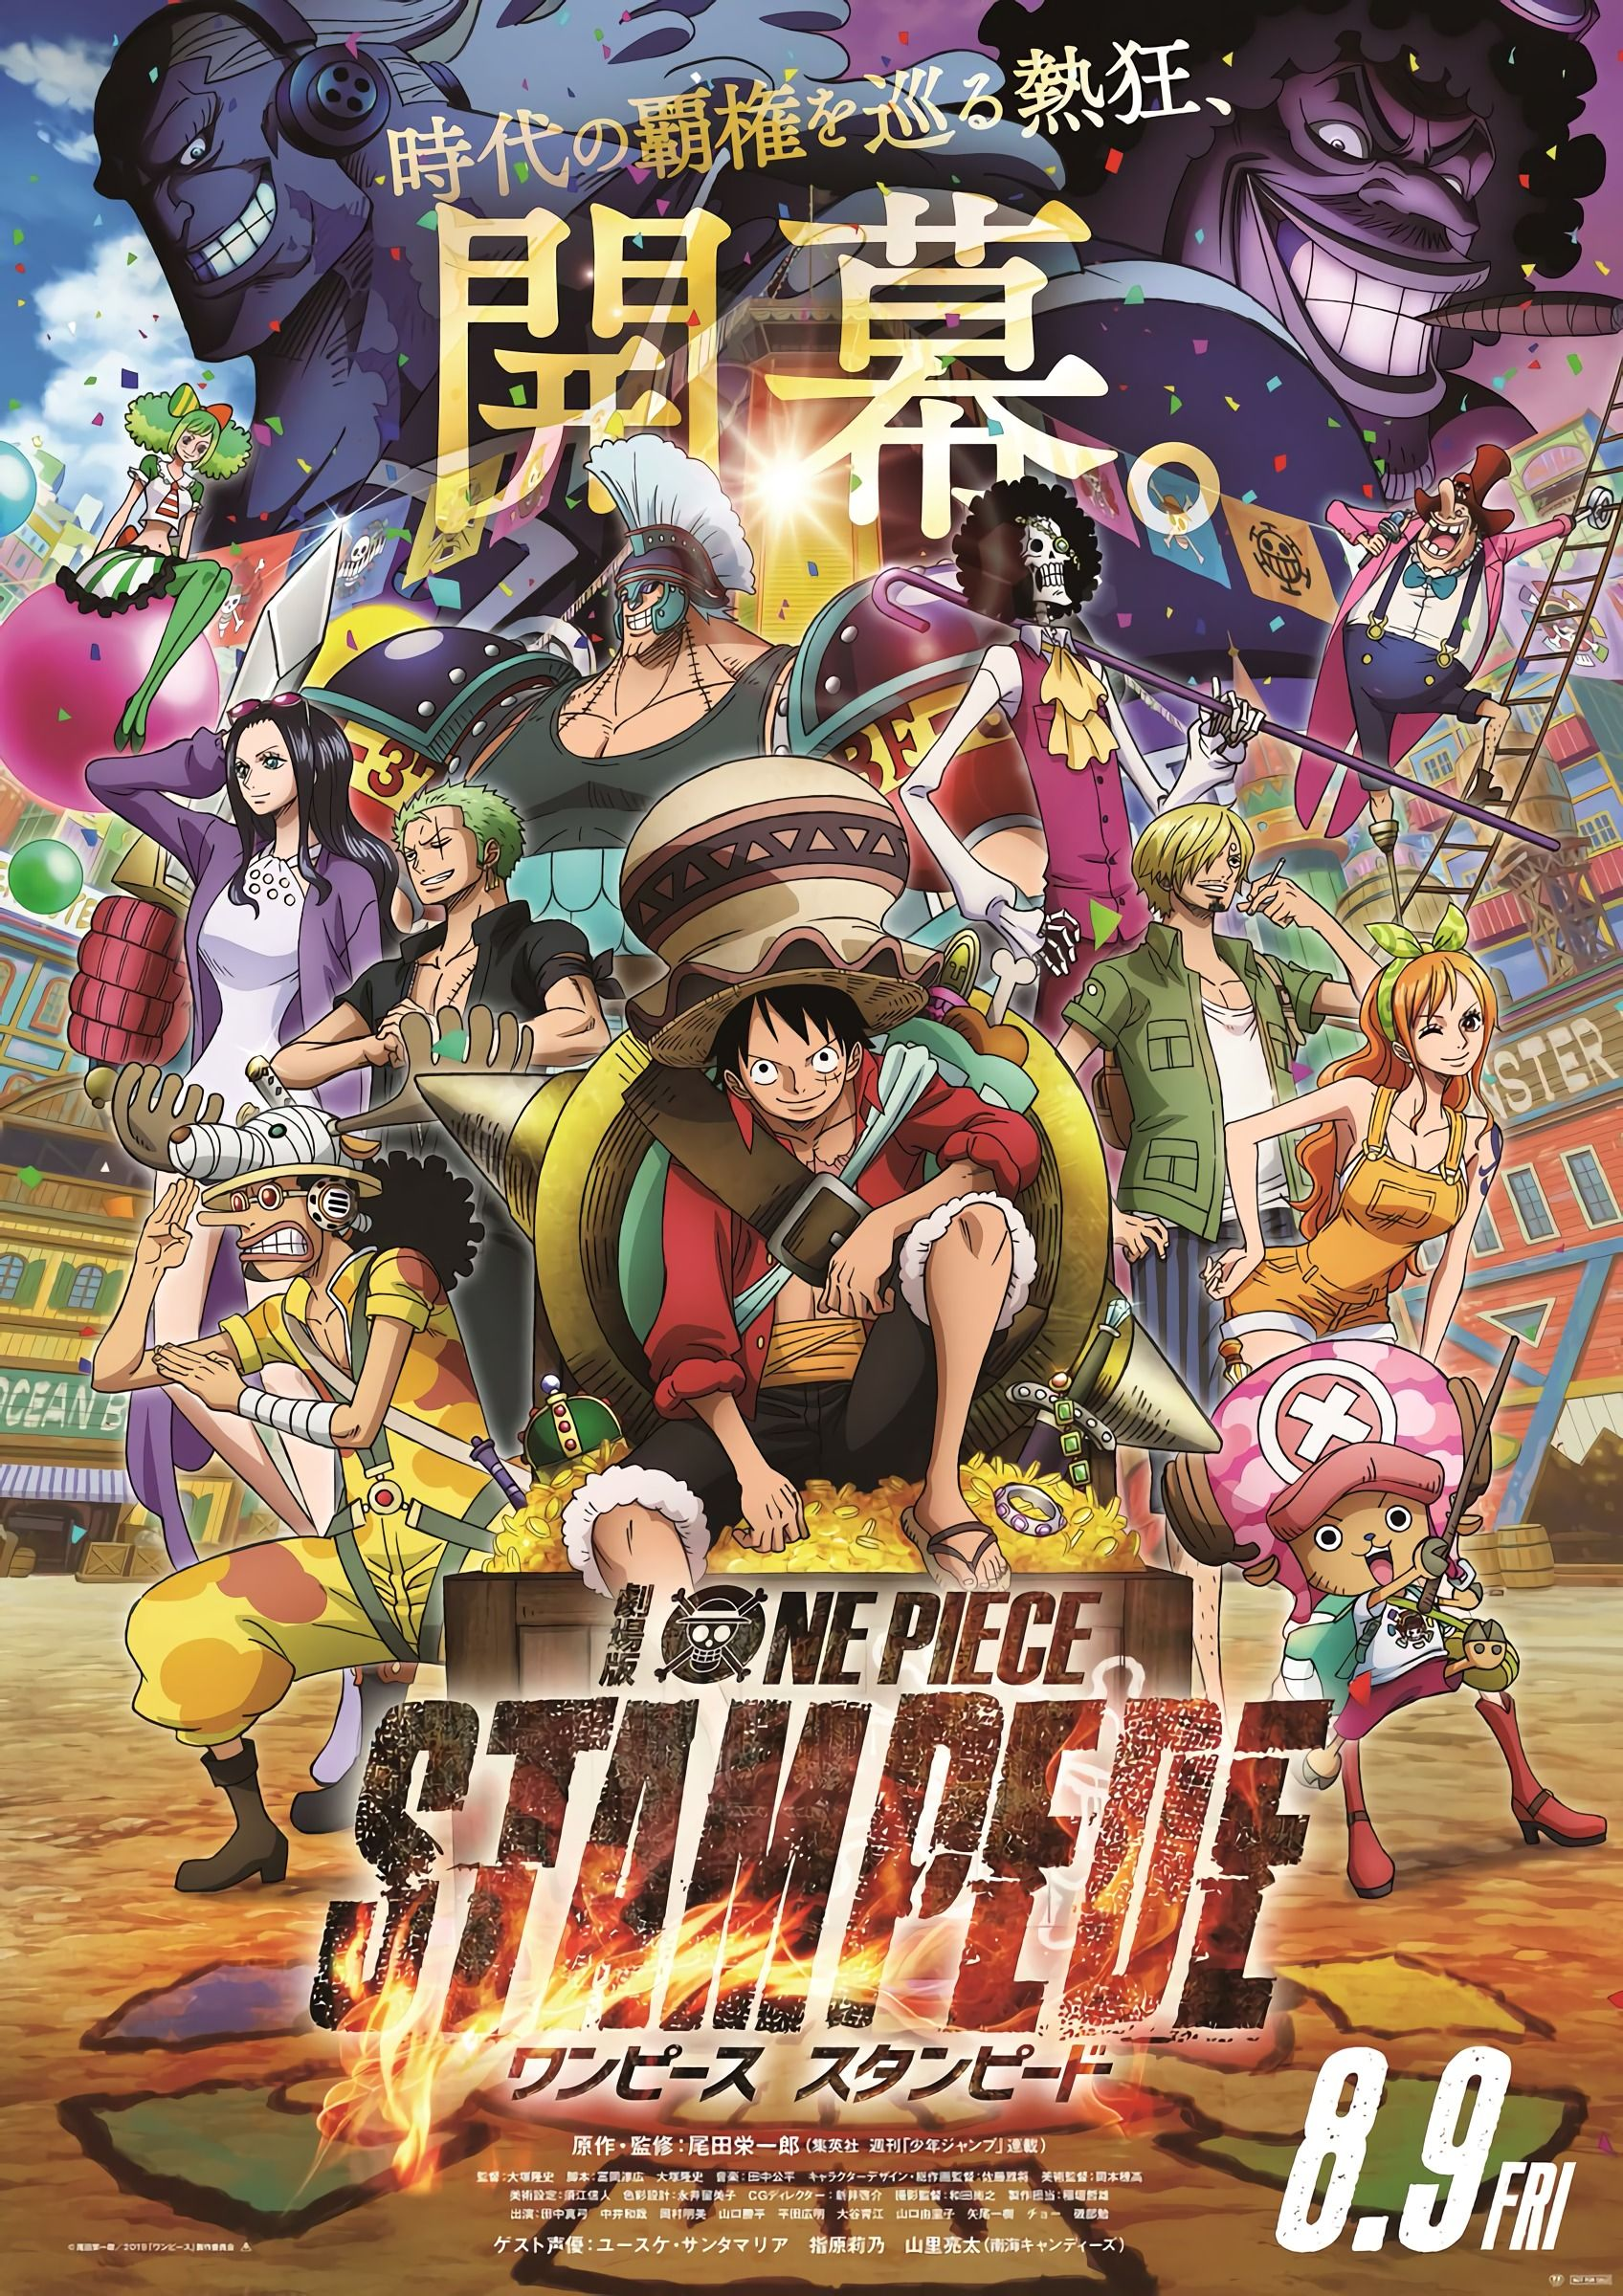 Wallpaper One Piece Hp One Piece Stampede Theatrical Poster In Hd 1700x2400 Hd Wallpaper One Piece Monkey D Luffy In 2020 One Piece Movies Watch One Piece Anime One